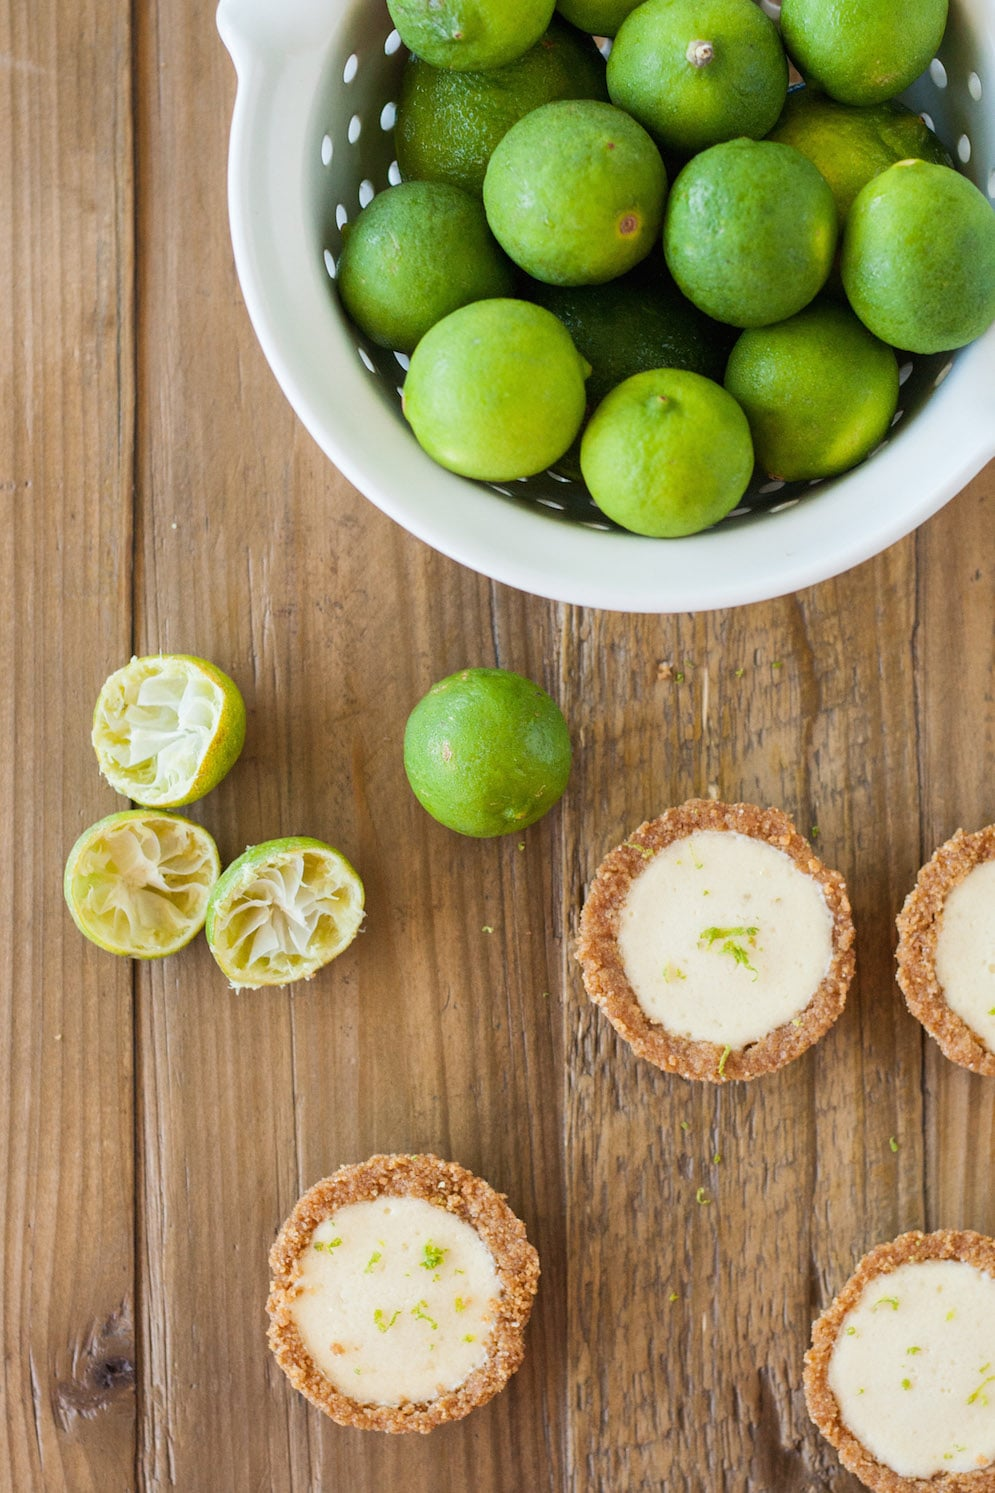 Overhead shot of the tarts and limes